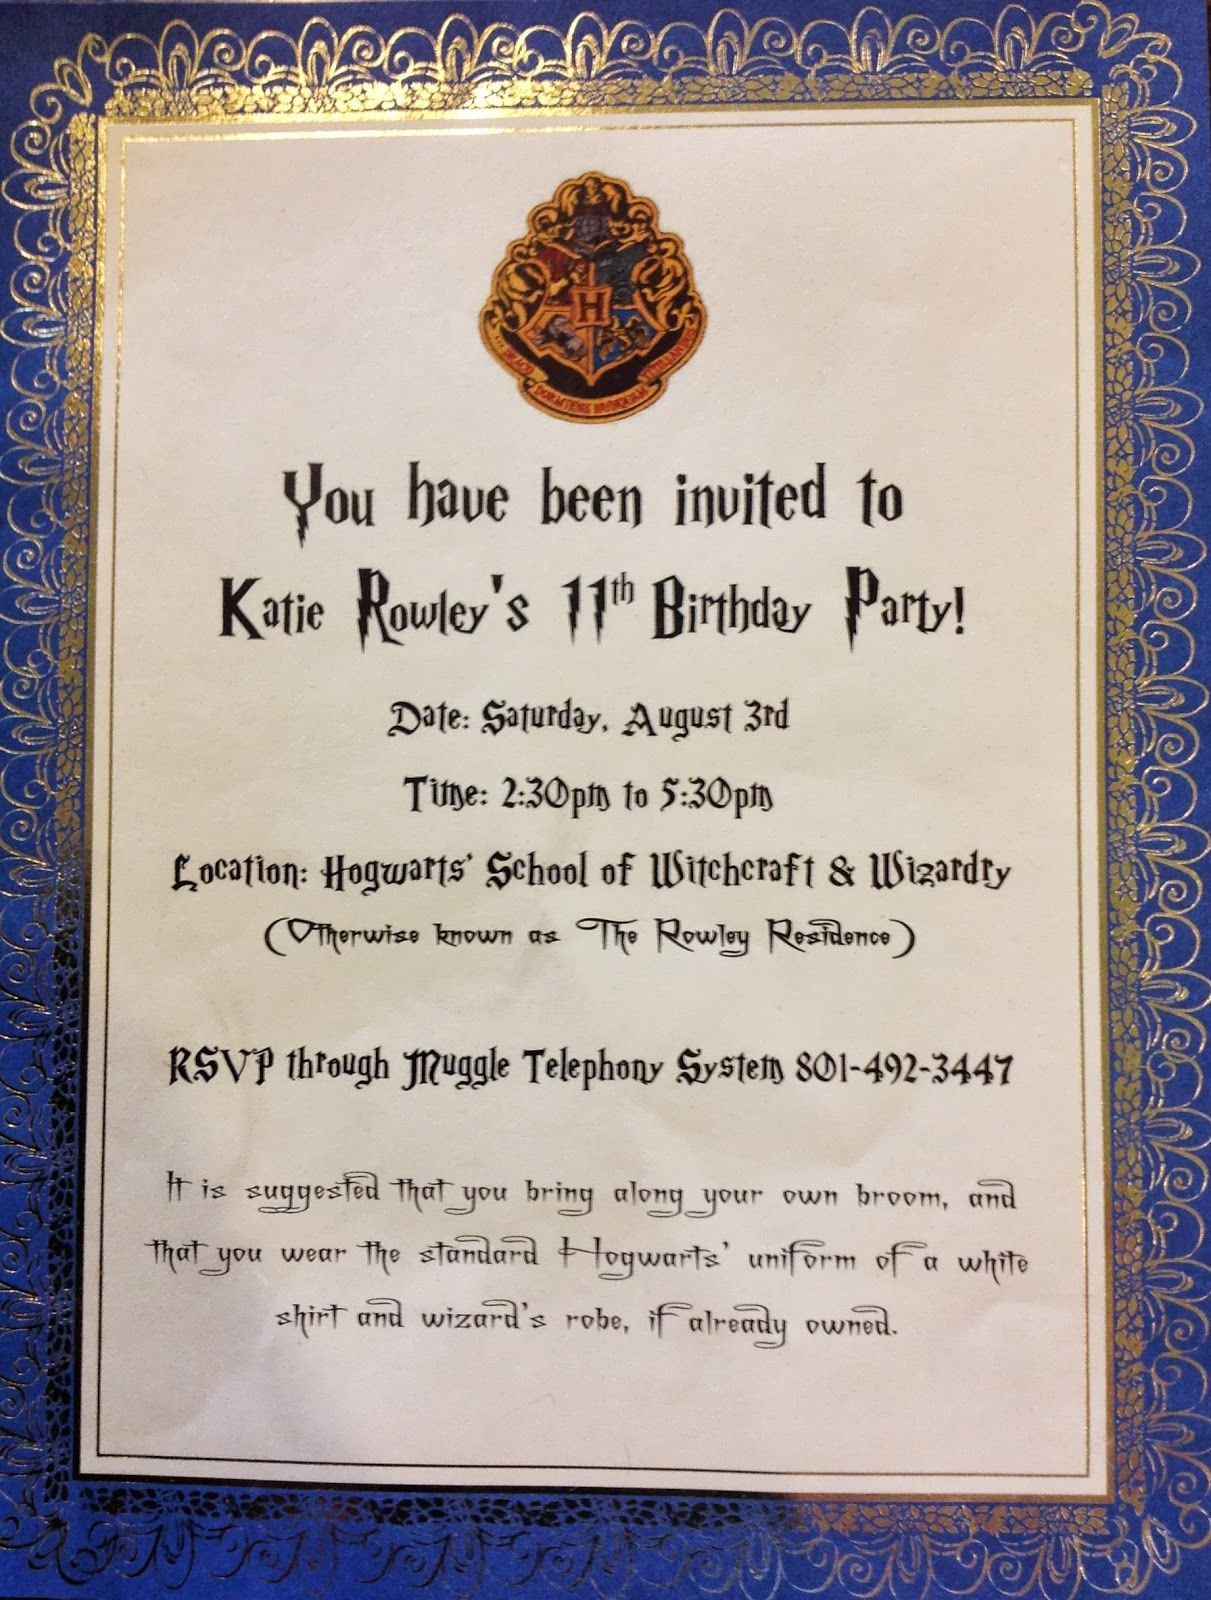 Harry Potter Birthday Party Invitations And Costumes Harry Potter Party Invitations Harry Potter Wedding Invitations Party Invite Template